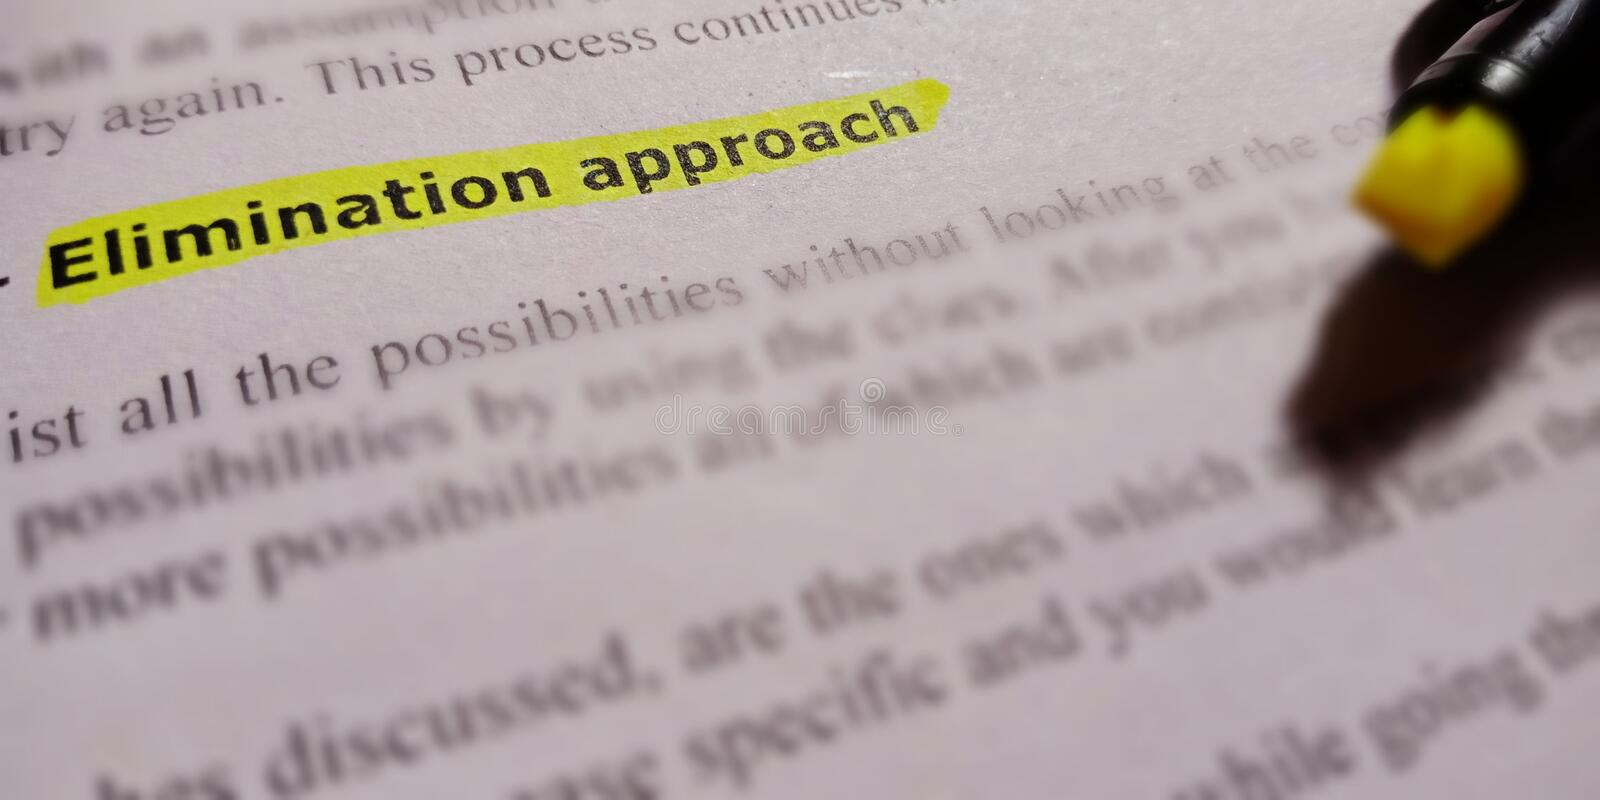 Elimination approach text written on english language with green colour highlighted on white paper sheet royalty free stock photography